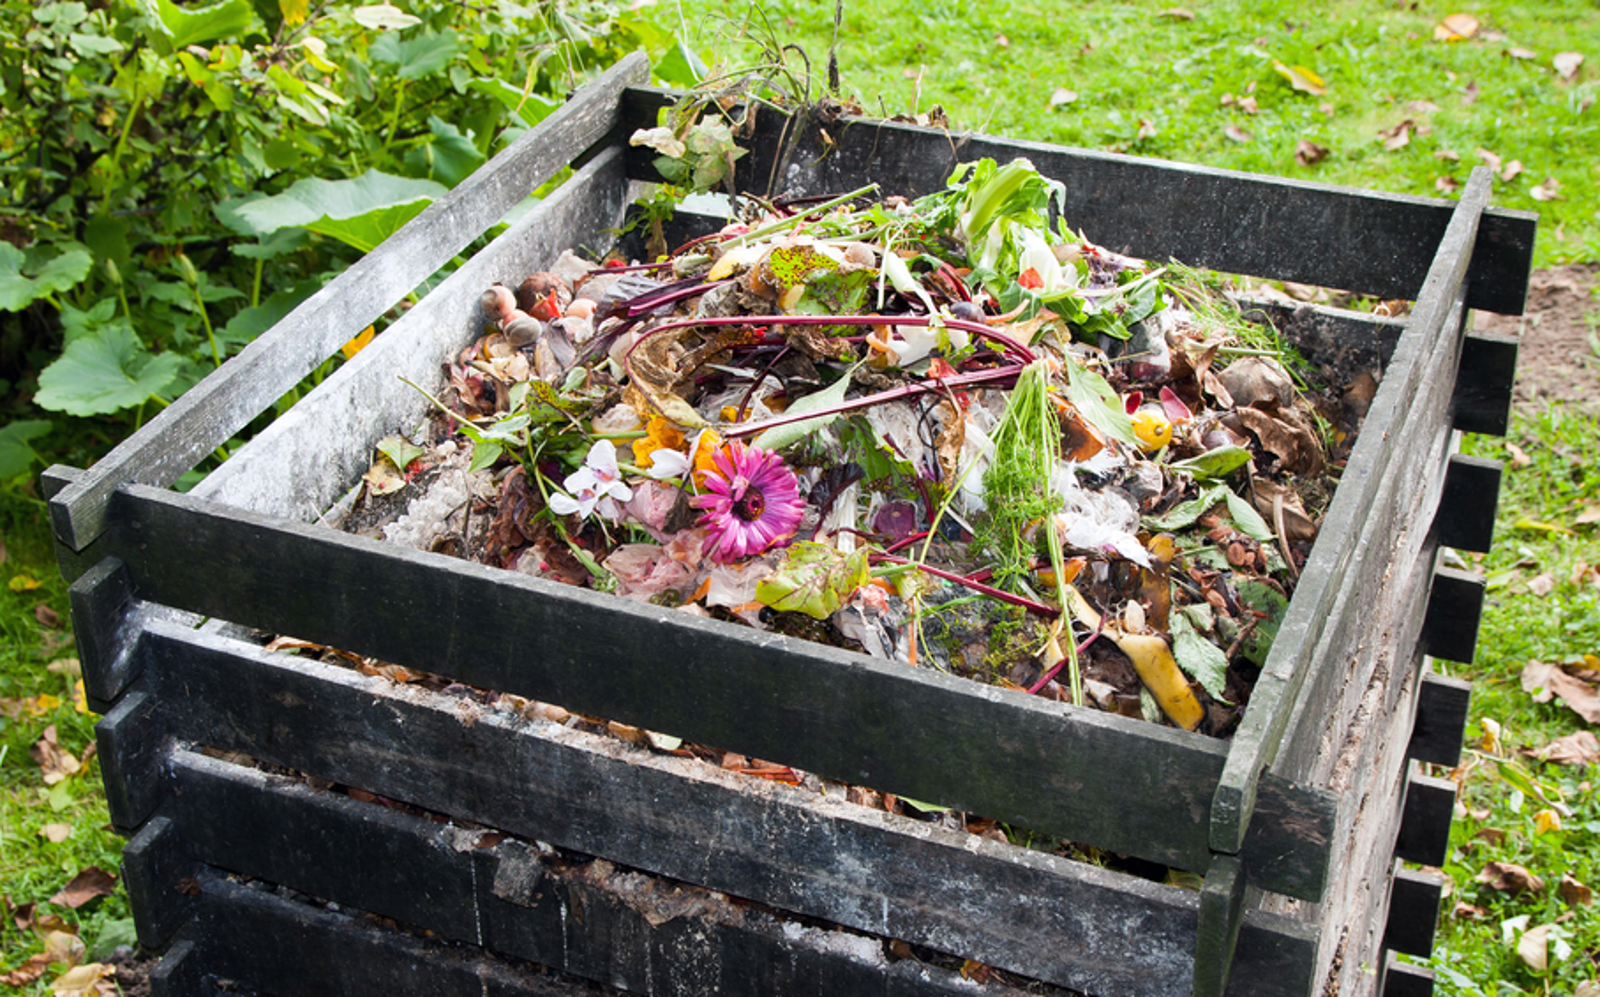 What to Do With All This Compost